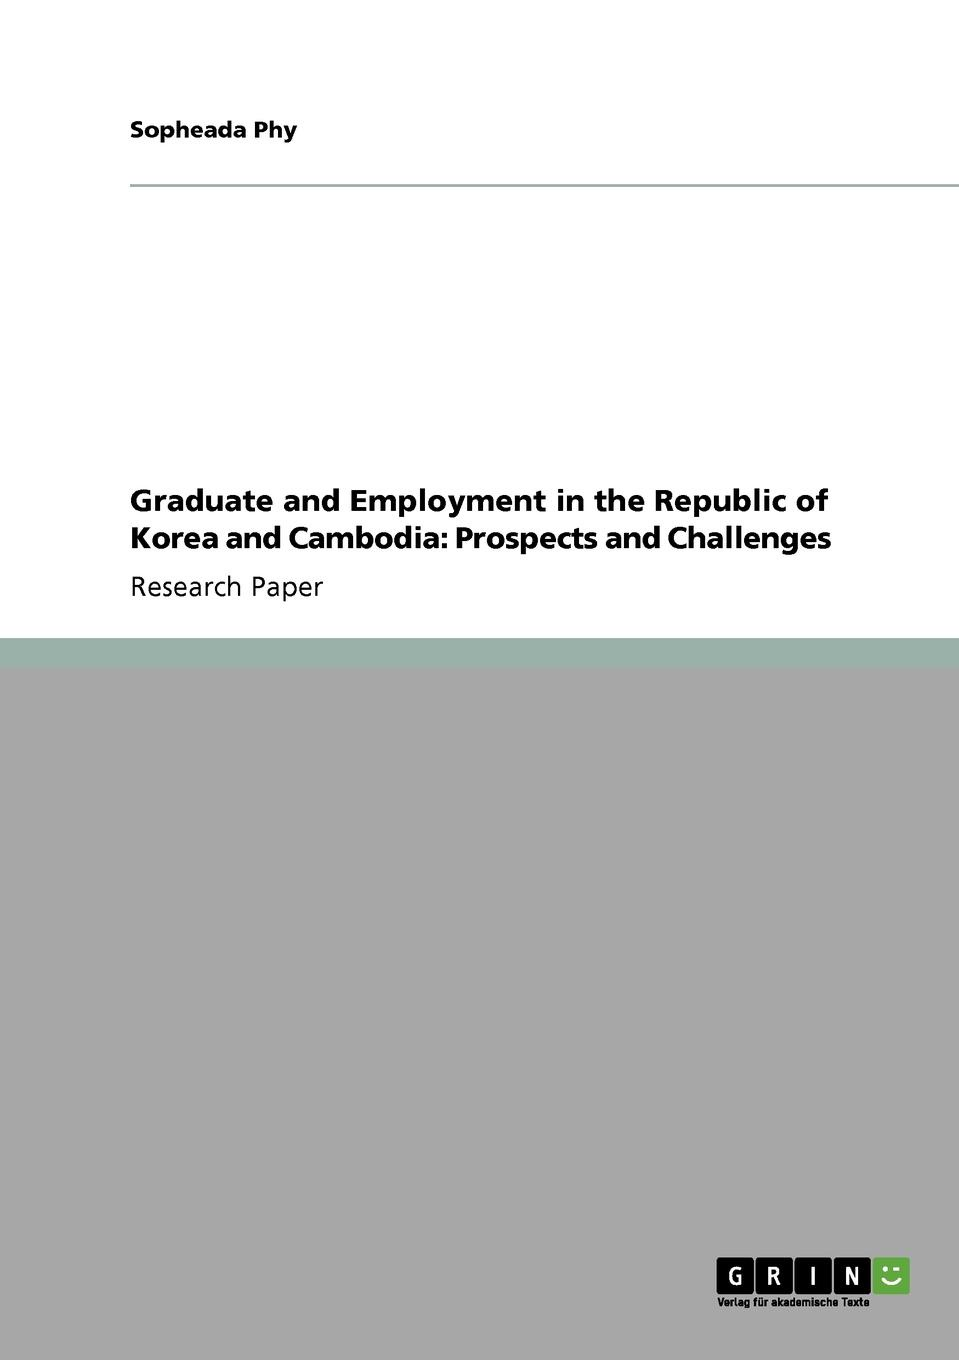 Sopheada Phy Graduate and Employment in the Republic of Korea and Cambodia. Prospects and Challenges study of knowledge transfer in cambodia